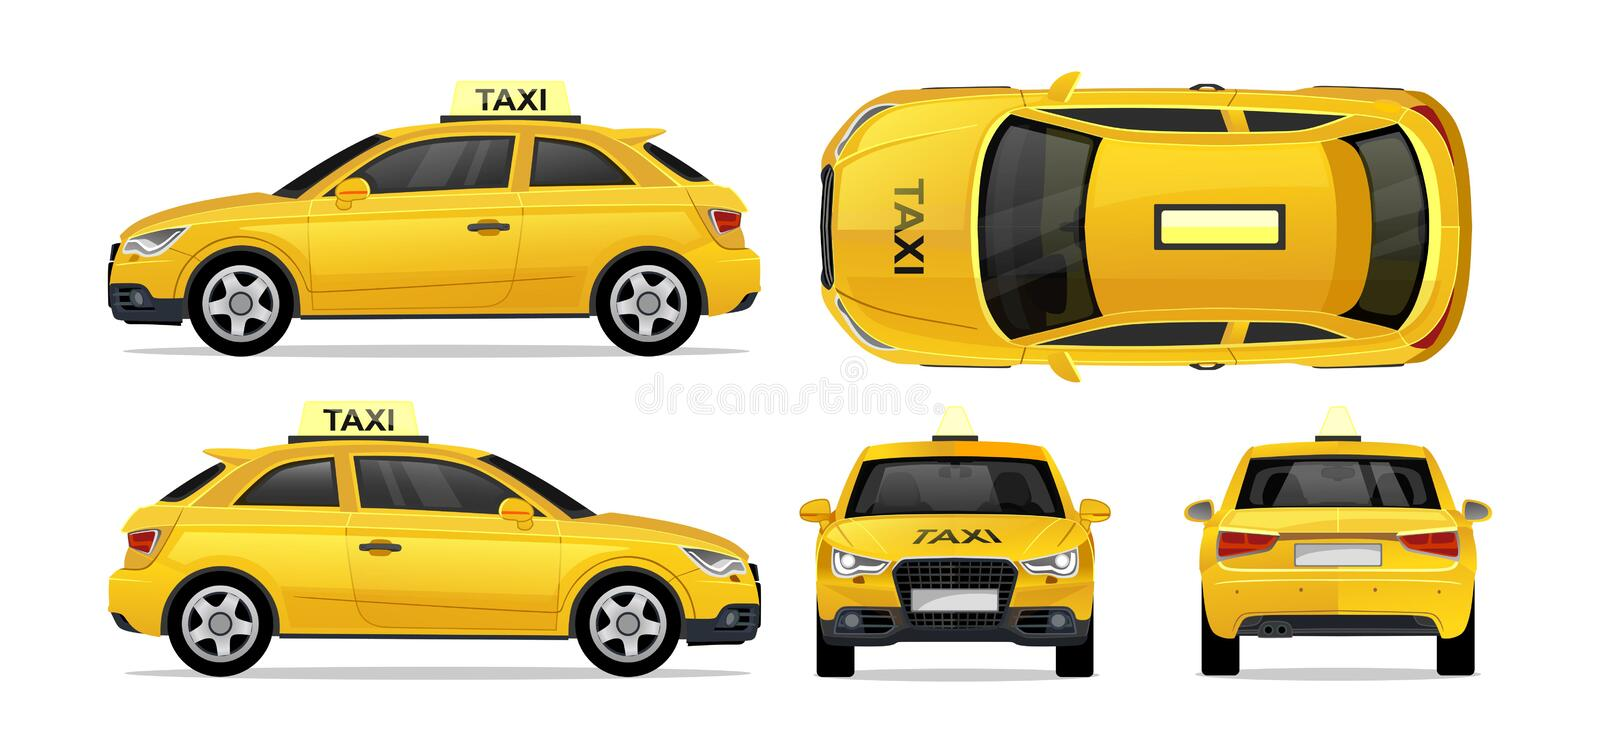 Taxi yellow car with side, front, back and top. City transport taxi icon set for mobile, web, promotions. Taxi cab isolated on. White background.hi-Detailed vector illustration